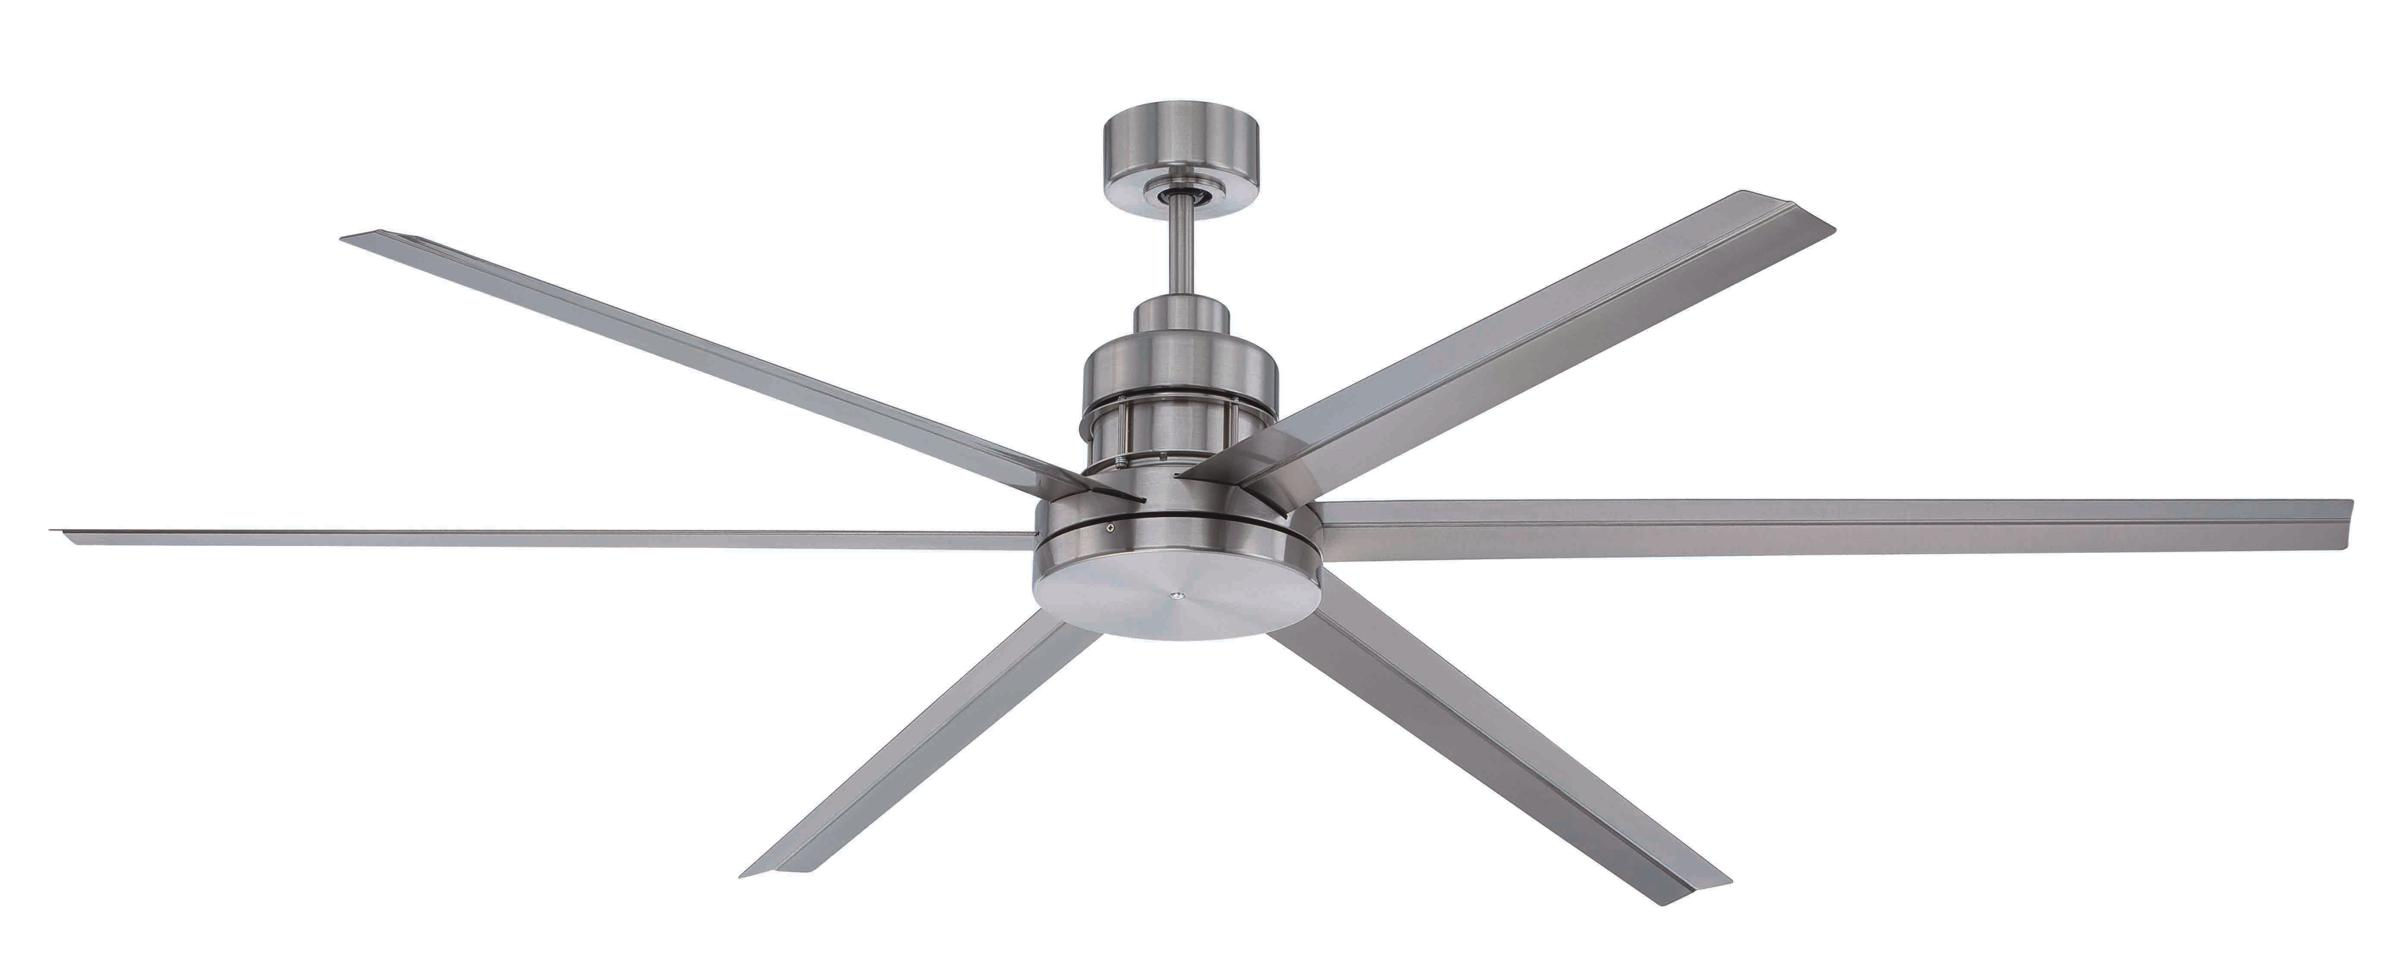 huge ceiling fans photo - 7